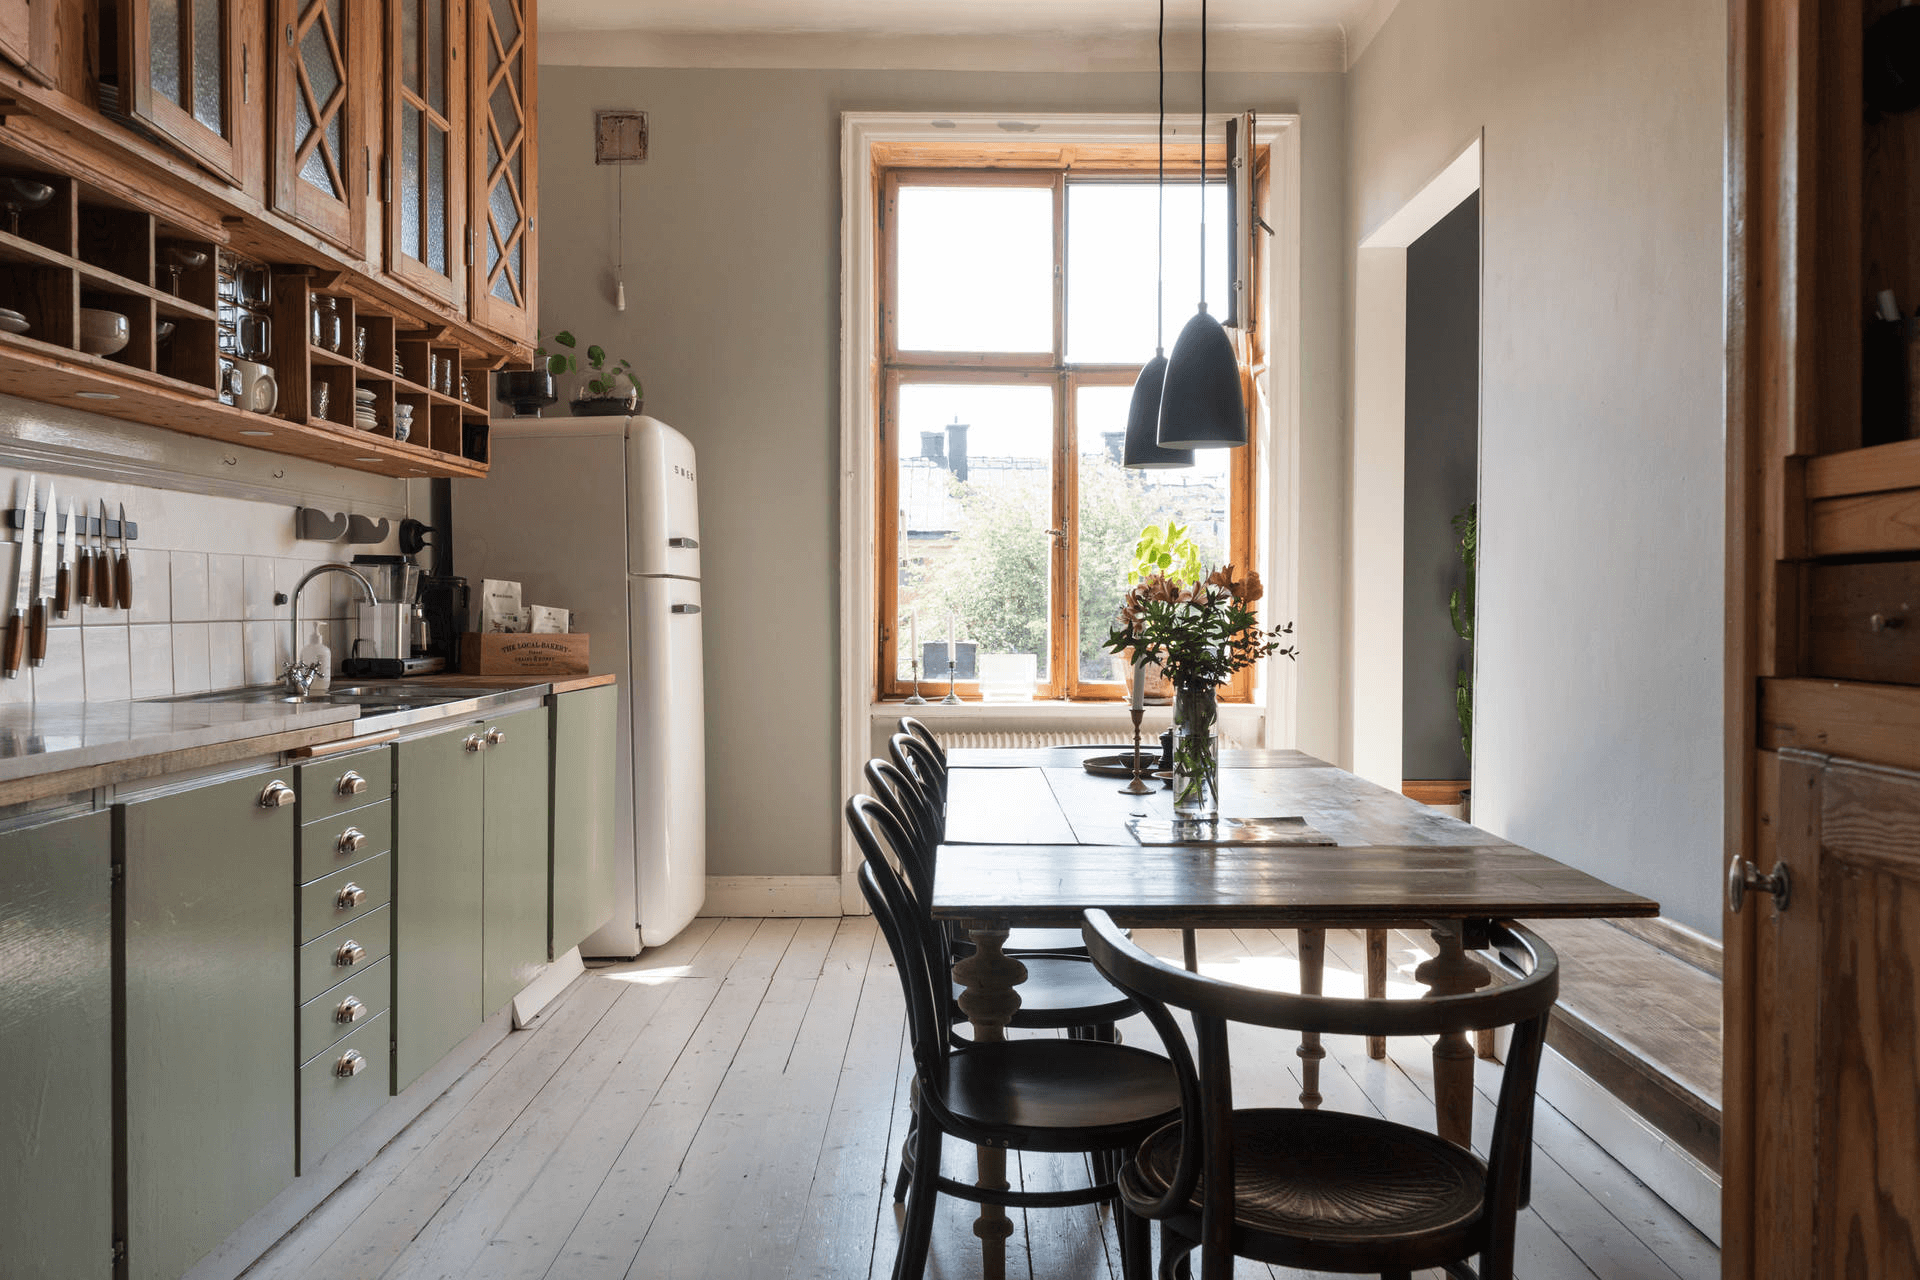 this is a scandinavian and minimal design kitchen with smeg fridge and wooden cabinets